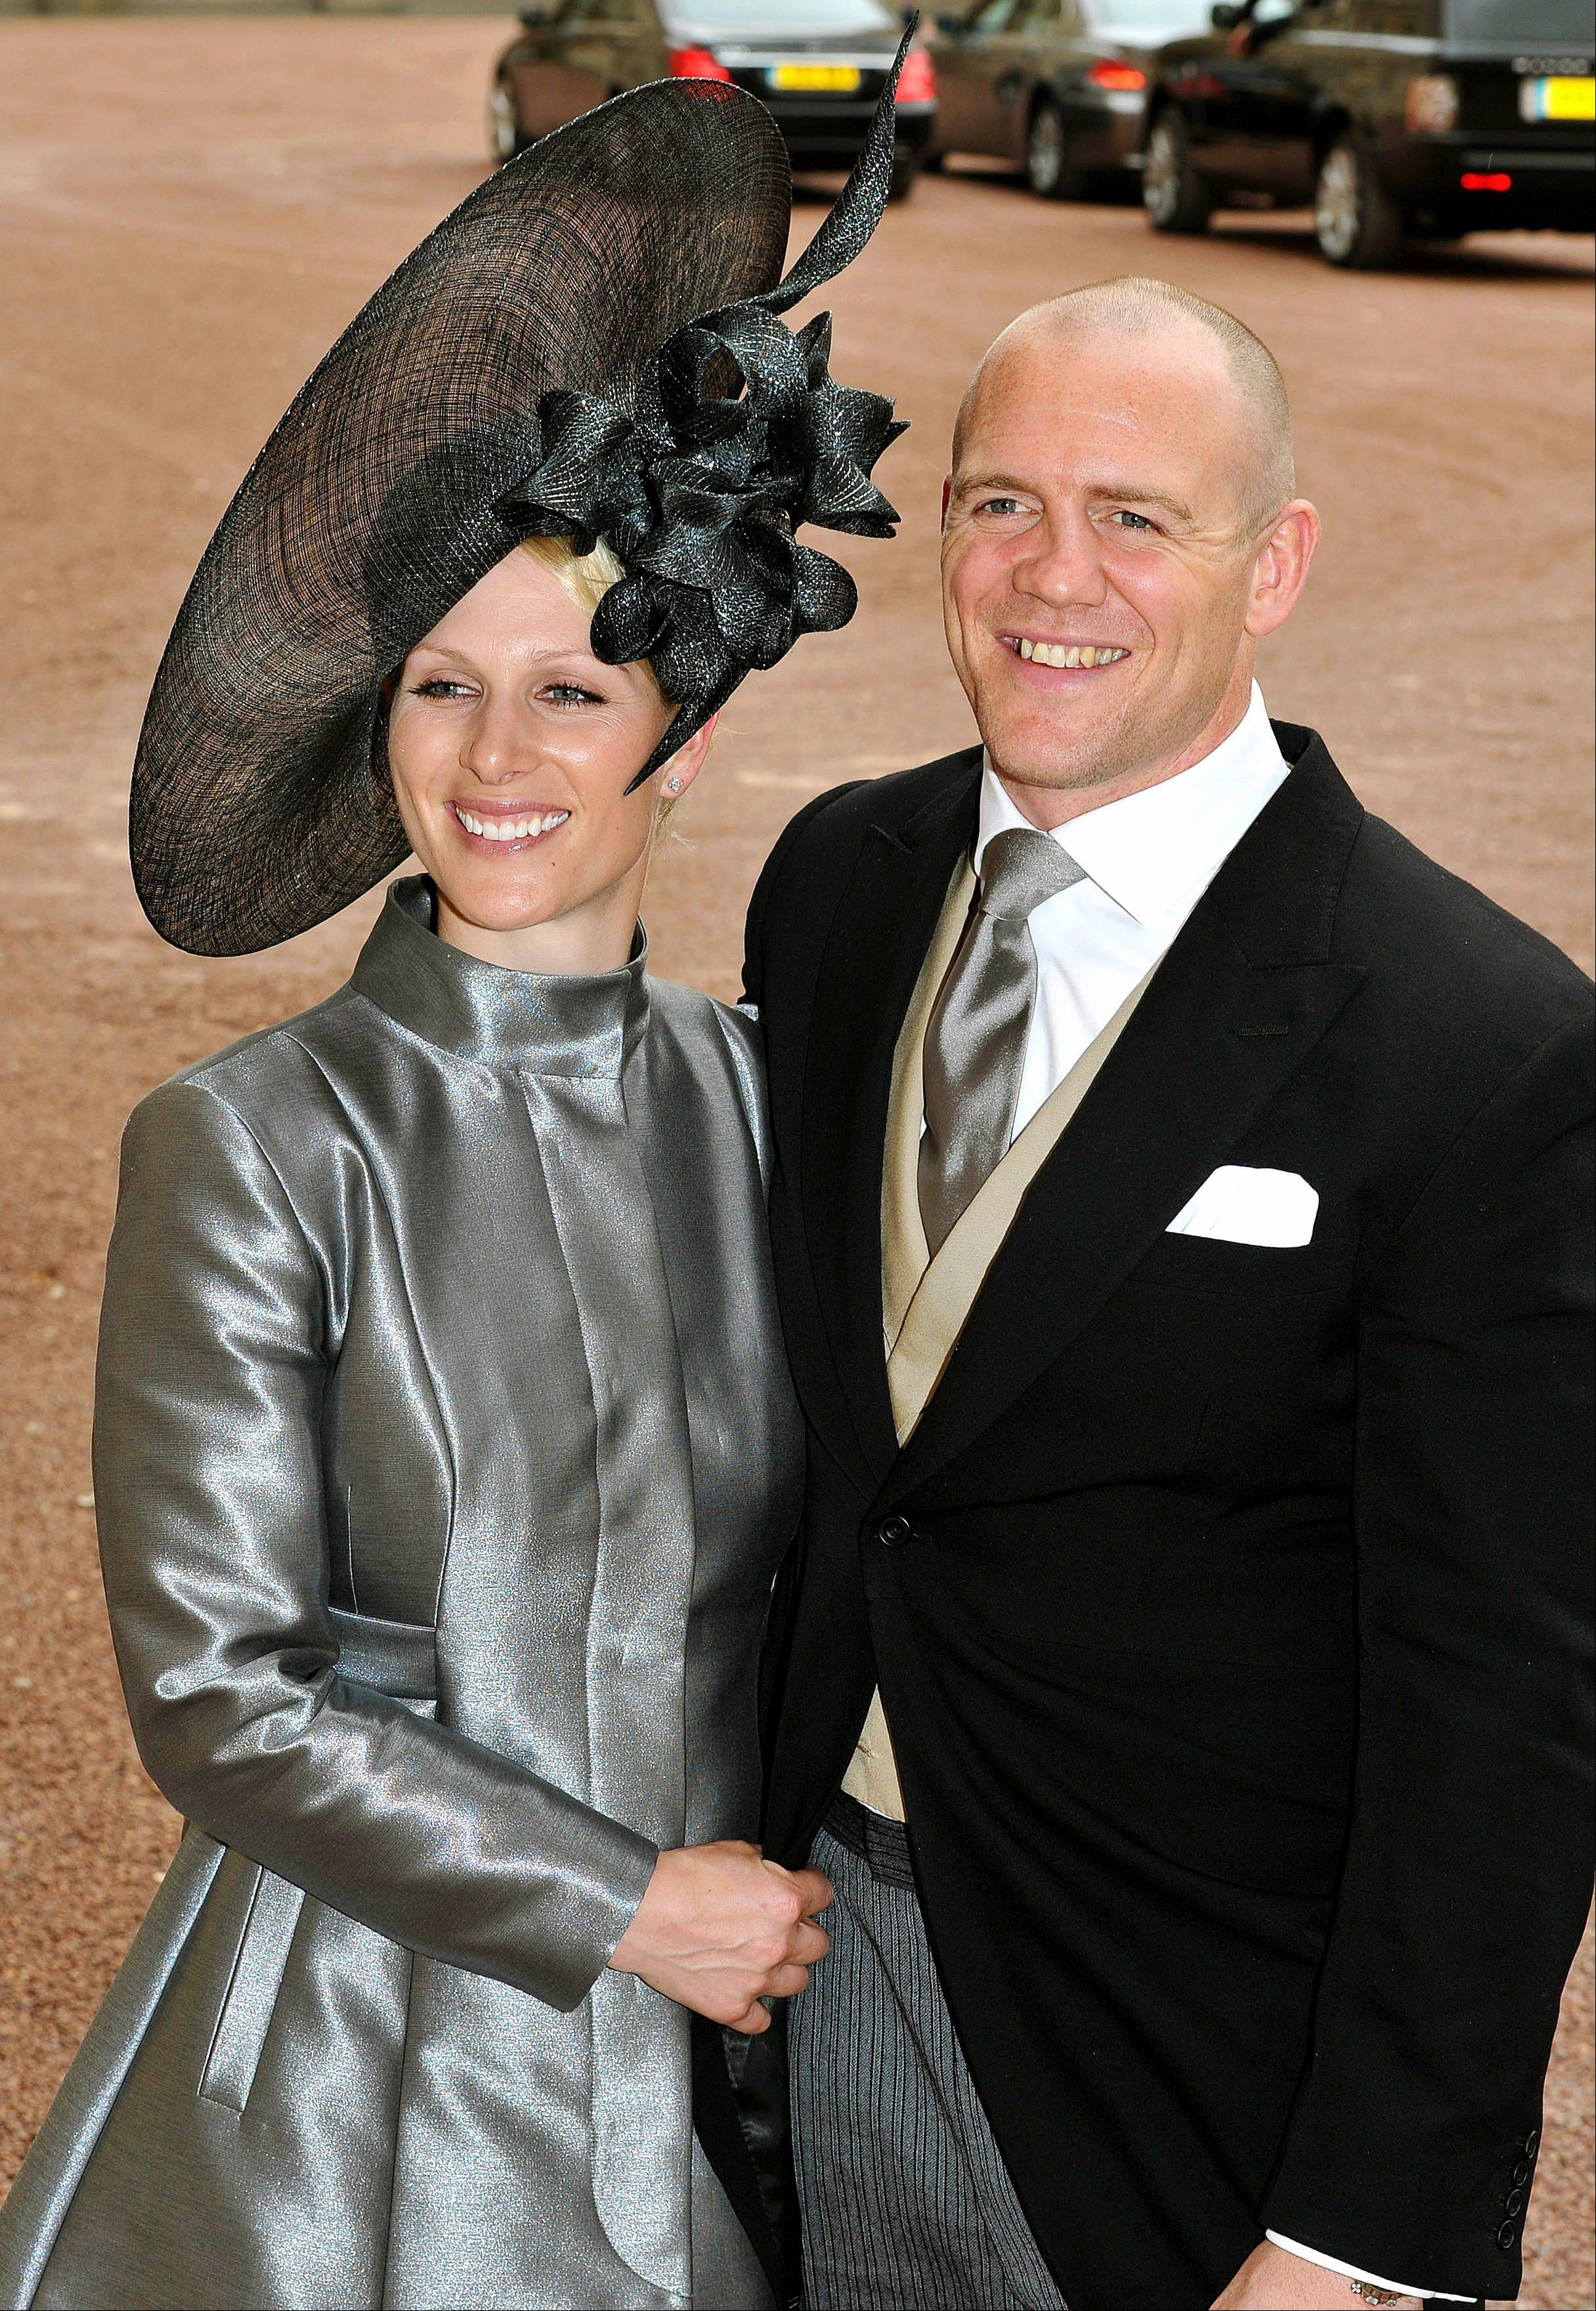 Zara Phillips, left, and her fiance Mike Tindall leave the wedding reception for Britain's Prince William and Catherine Middleton at Buckingham Palace, London. Britain will celebrate its second royal wedding of the season Saturday, July 30, 2011, with equestrian star Zara Phillips - eldest granddaughter of Queen Elizabeth II - set to take center stage as she marries England rugby stalwart Mike Tindall.